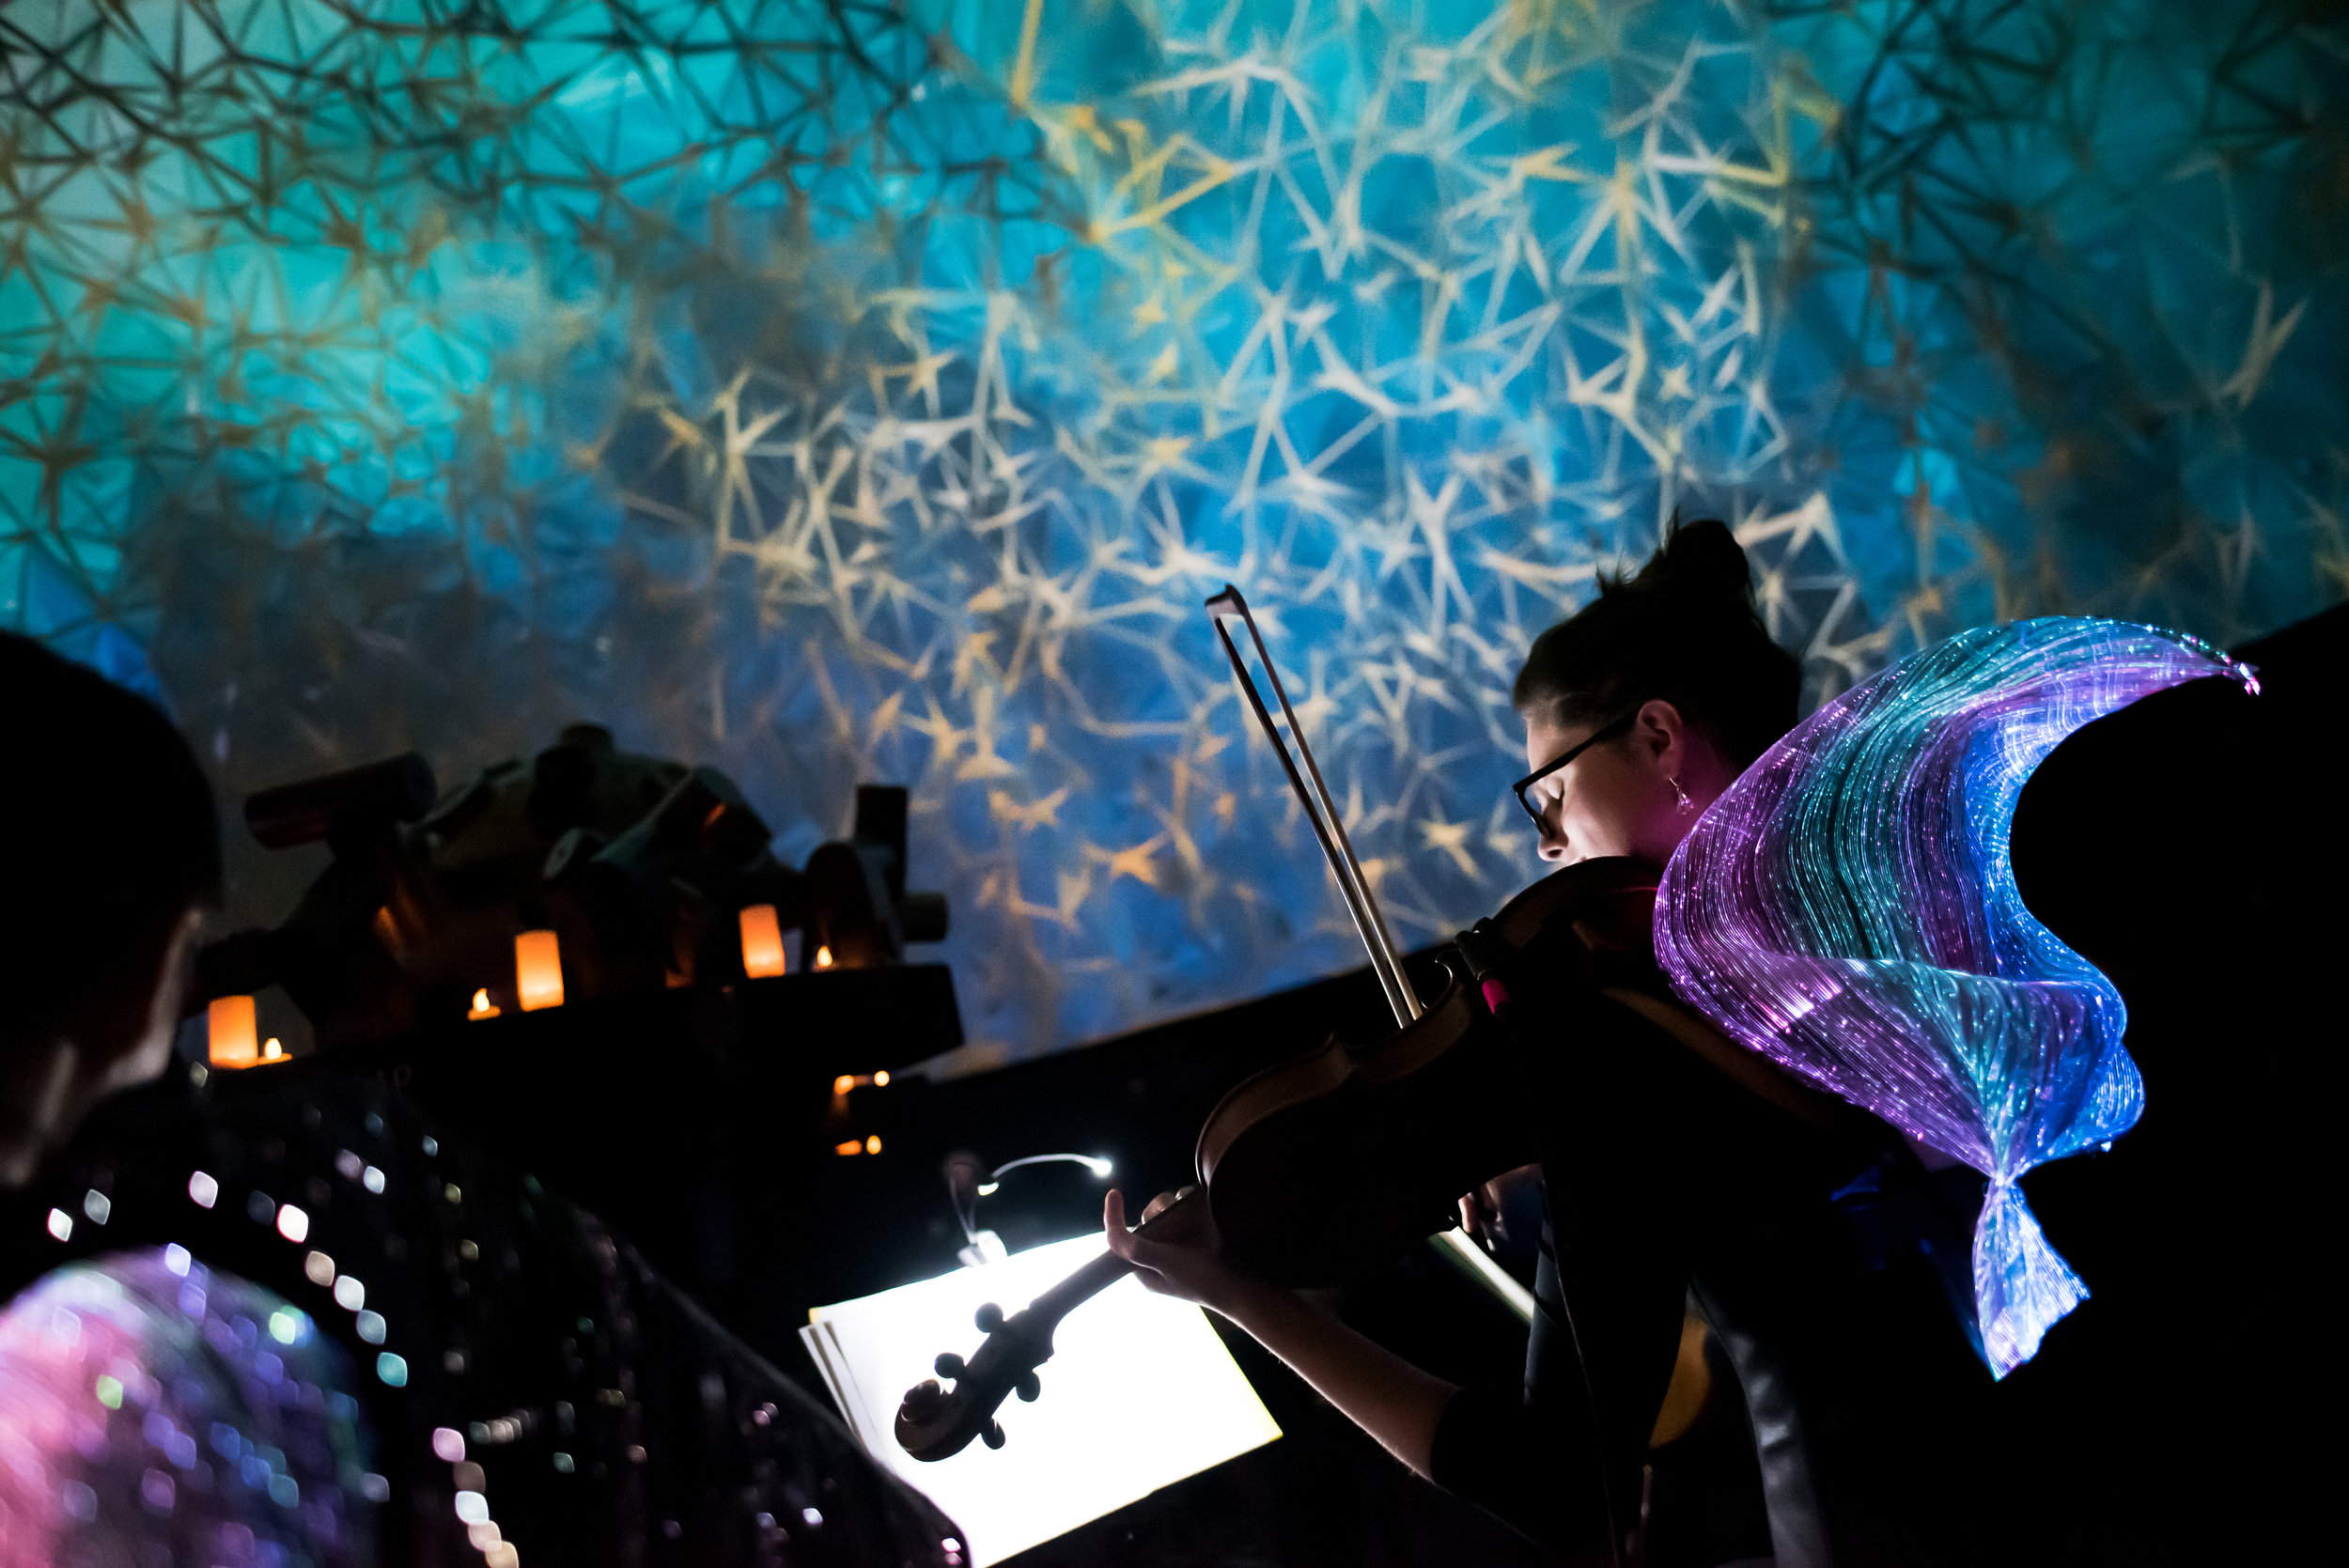 """Dome visuals and garments by Neoperceptions during the """"Synesthesia Suite"""" concert in Museum of Science, Boston on April 4th, 2019. Image taken by Jonathan Beckley."""